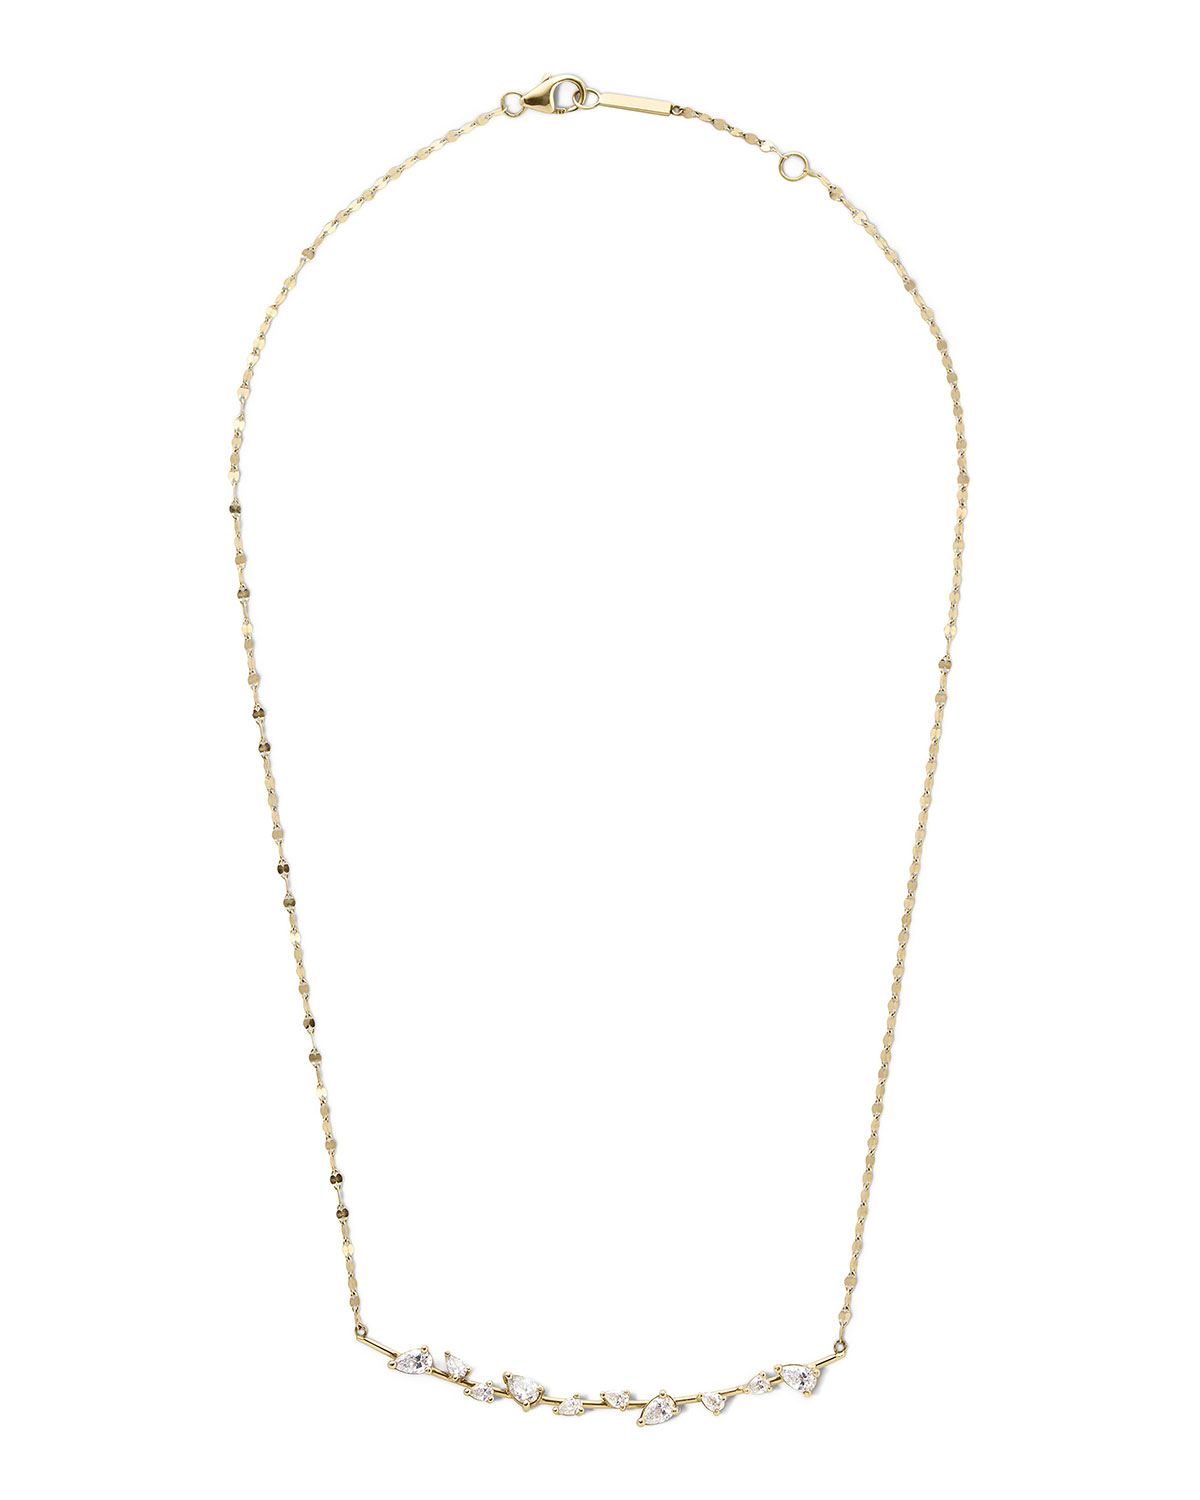 Lana 14k Gold & Diamond Pear Wire Pendant Necklace